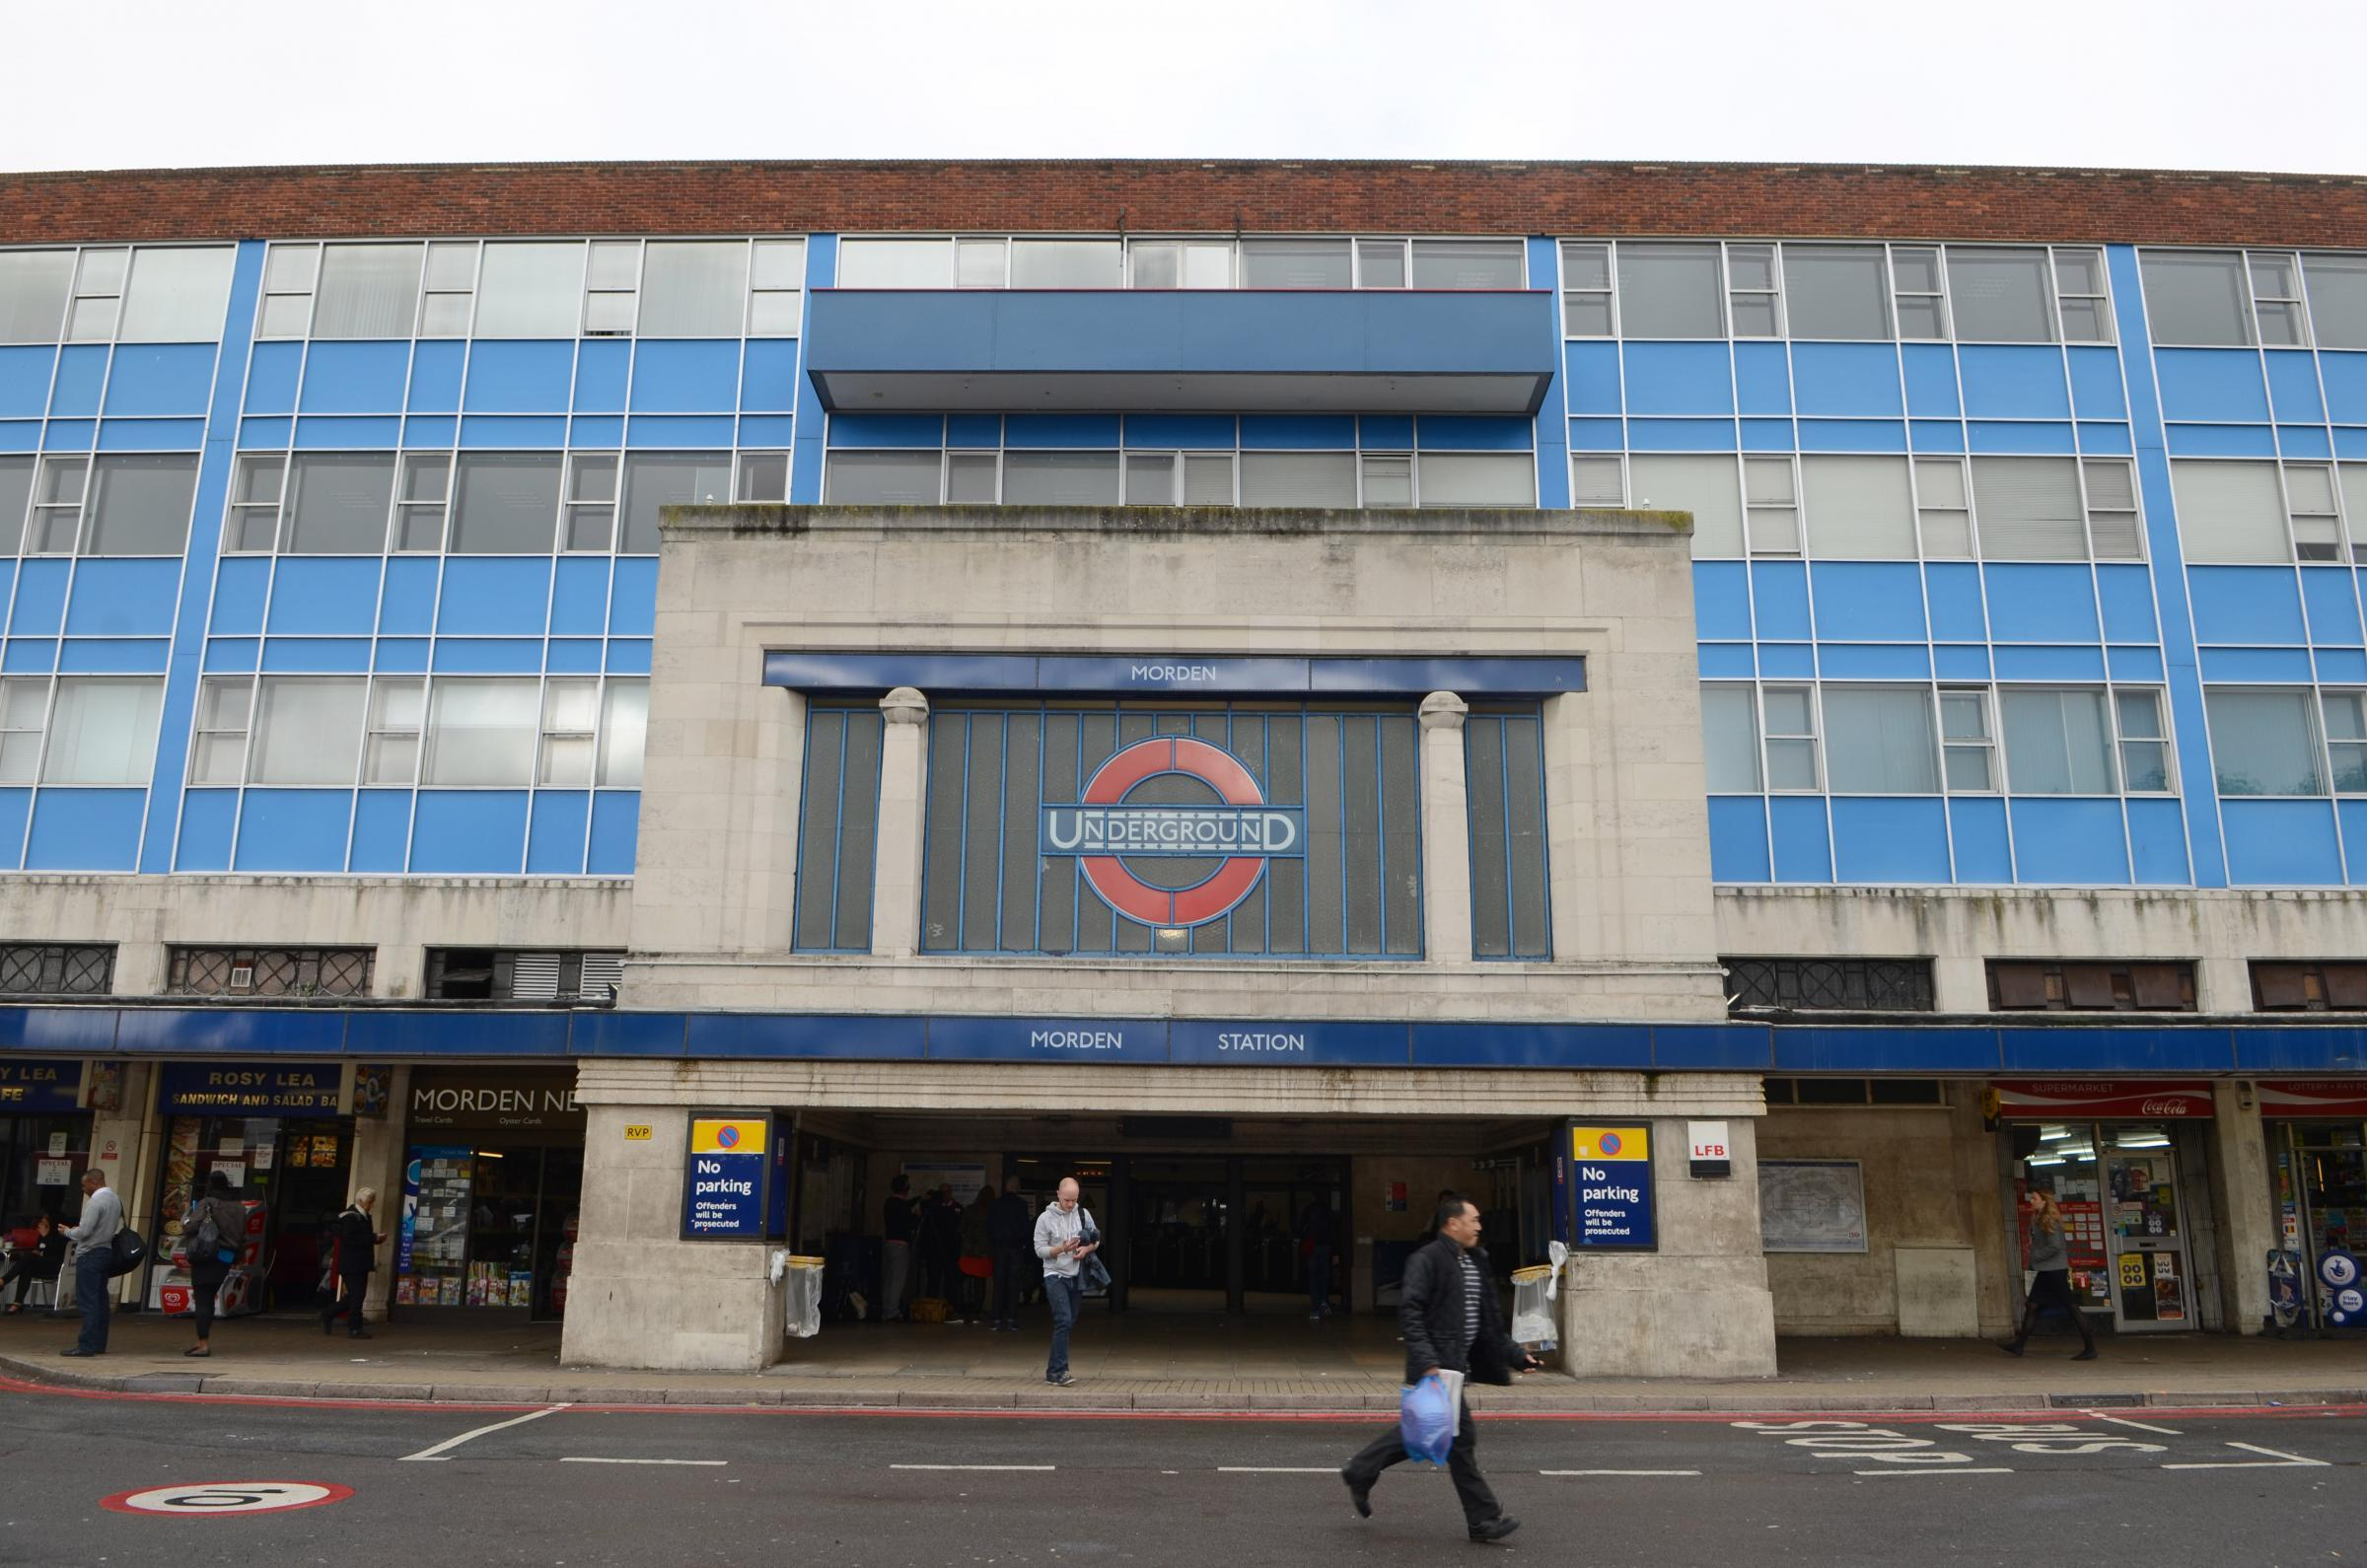 Inquiries underway after man attacked at Morden station